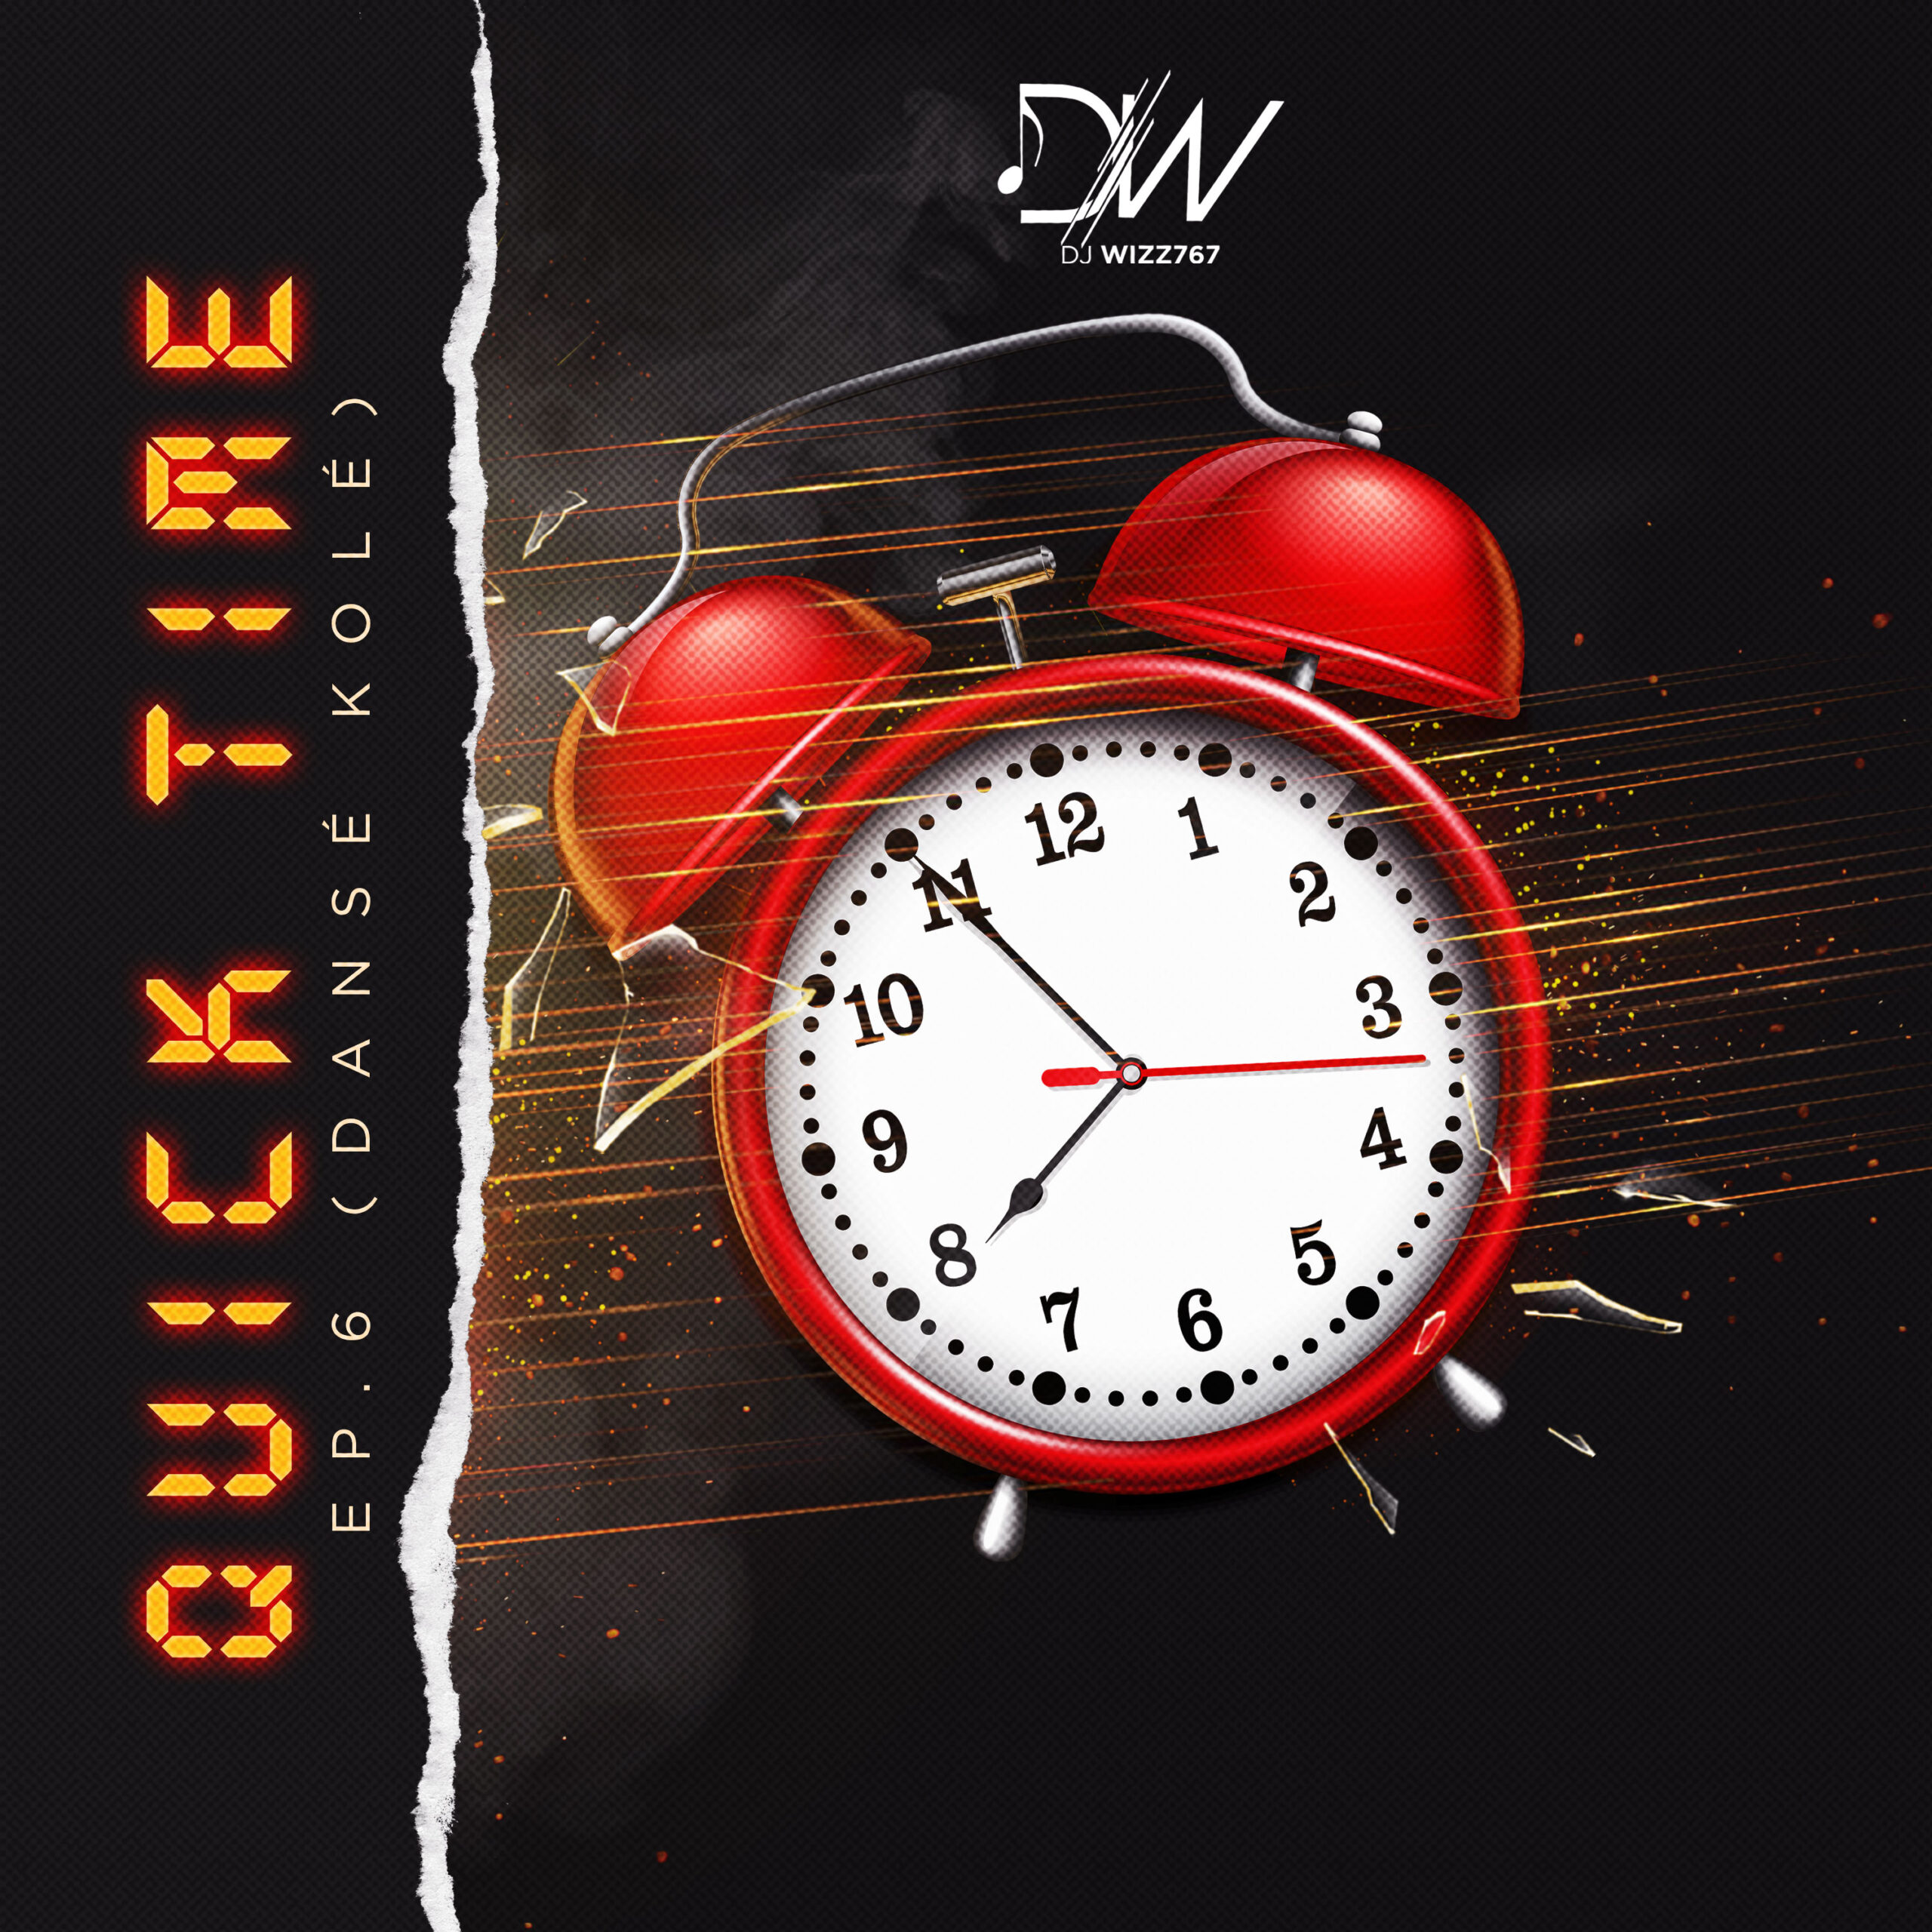 You are currently viewing Dj Wizz767 – QUICK TIME EP.6 (DANSÉ KOLÉ)